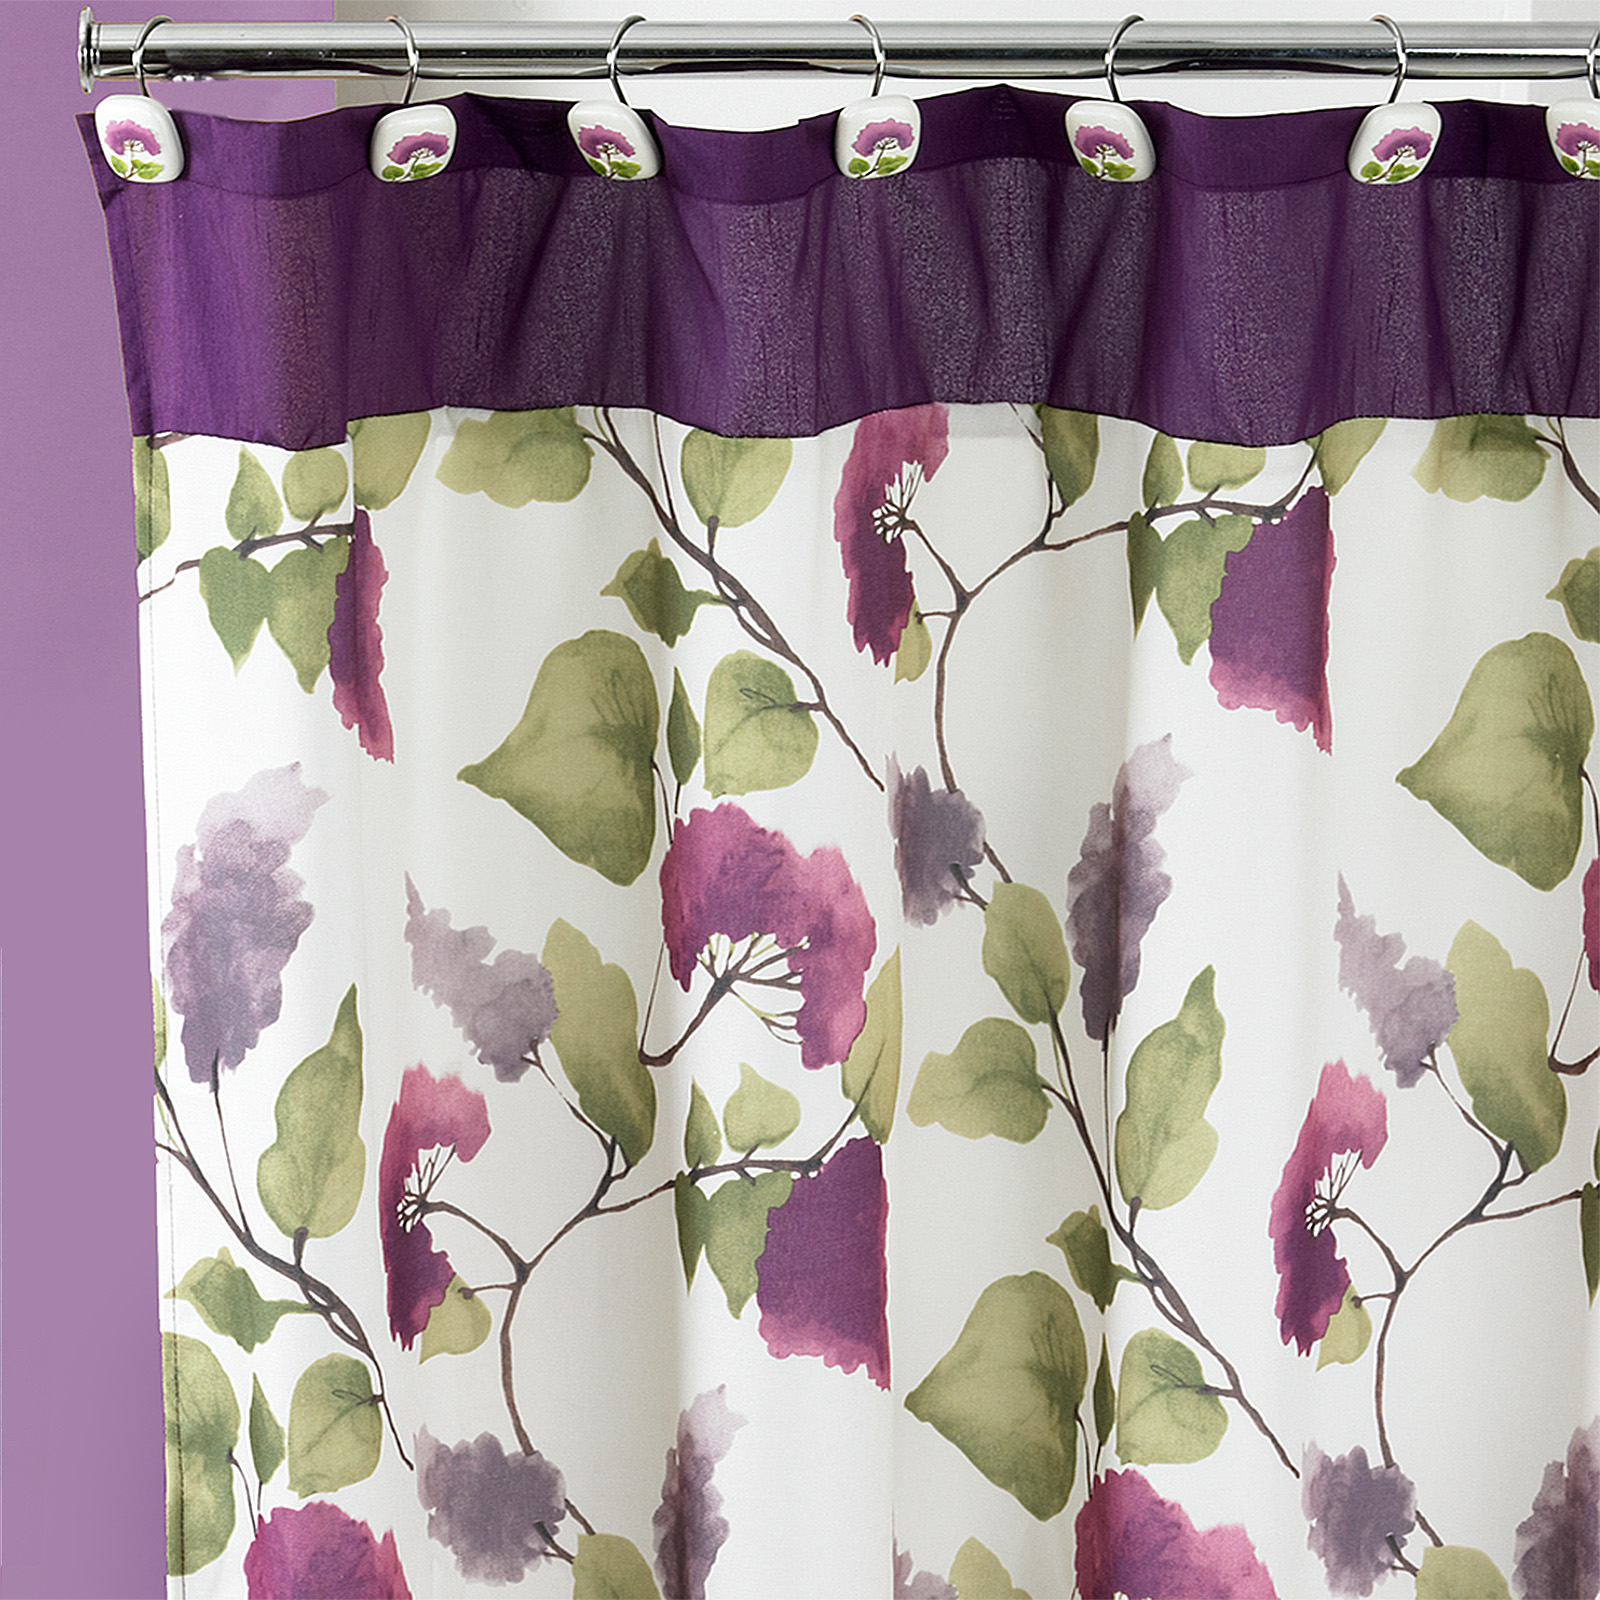 Details About 70 X 72 Fabric Bathroom Shower Curtain Popular Bath Jasmine Plum